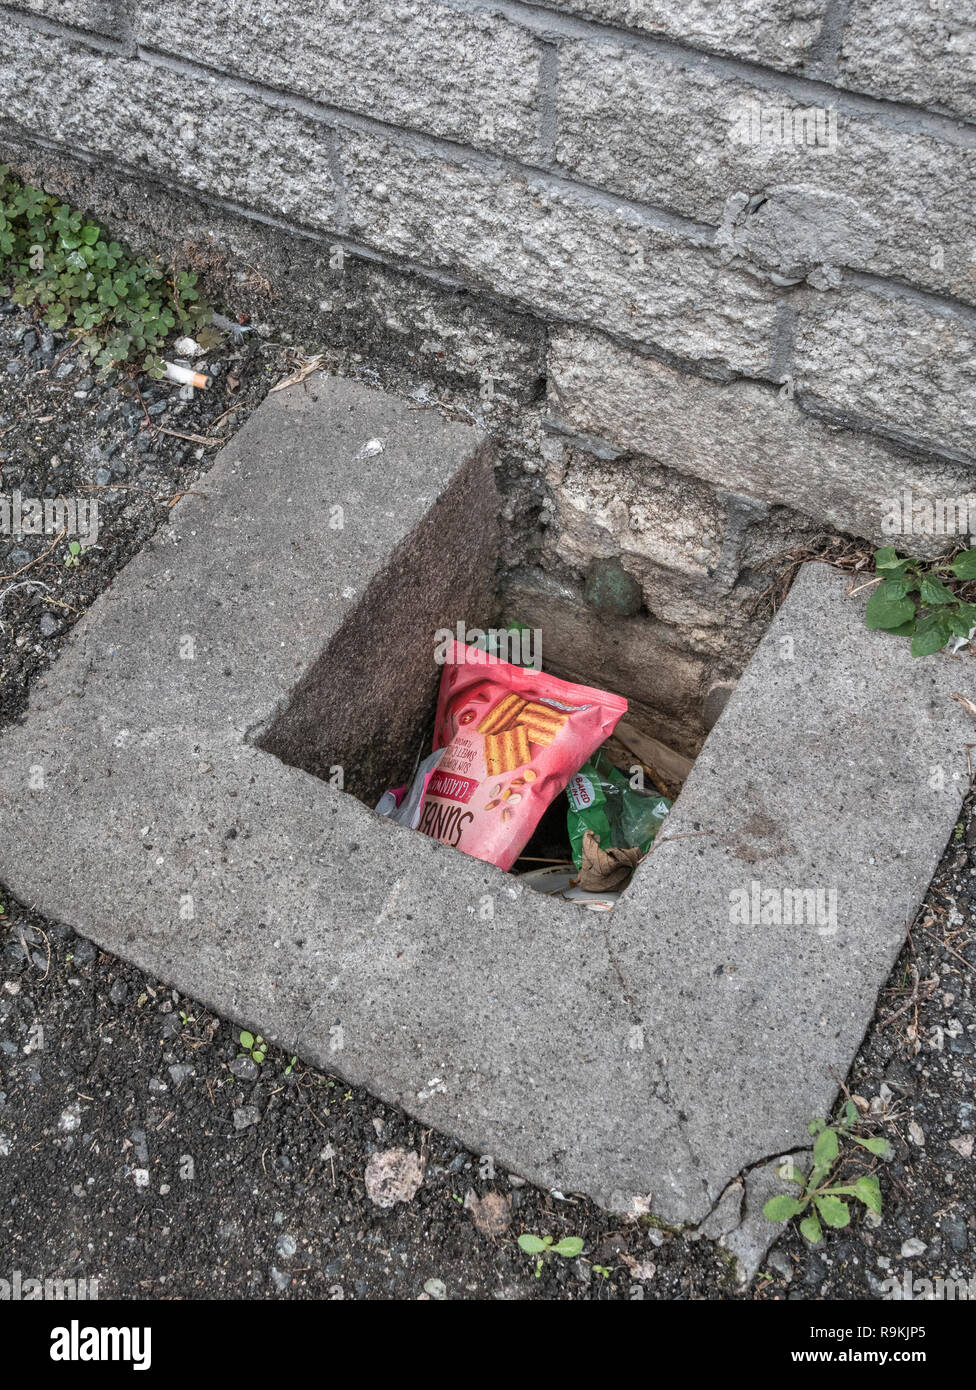 Plastic food wrapper discarded in urban drain. Metaphor plastic pollution, environmental pollution, war on plastic waste, plastic rubbish. Stock Photo